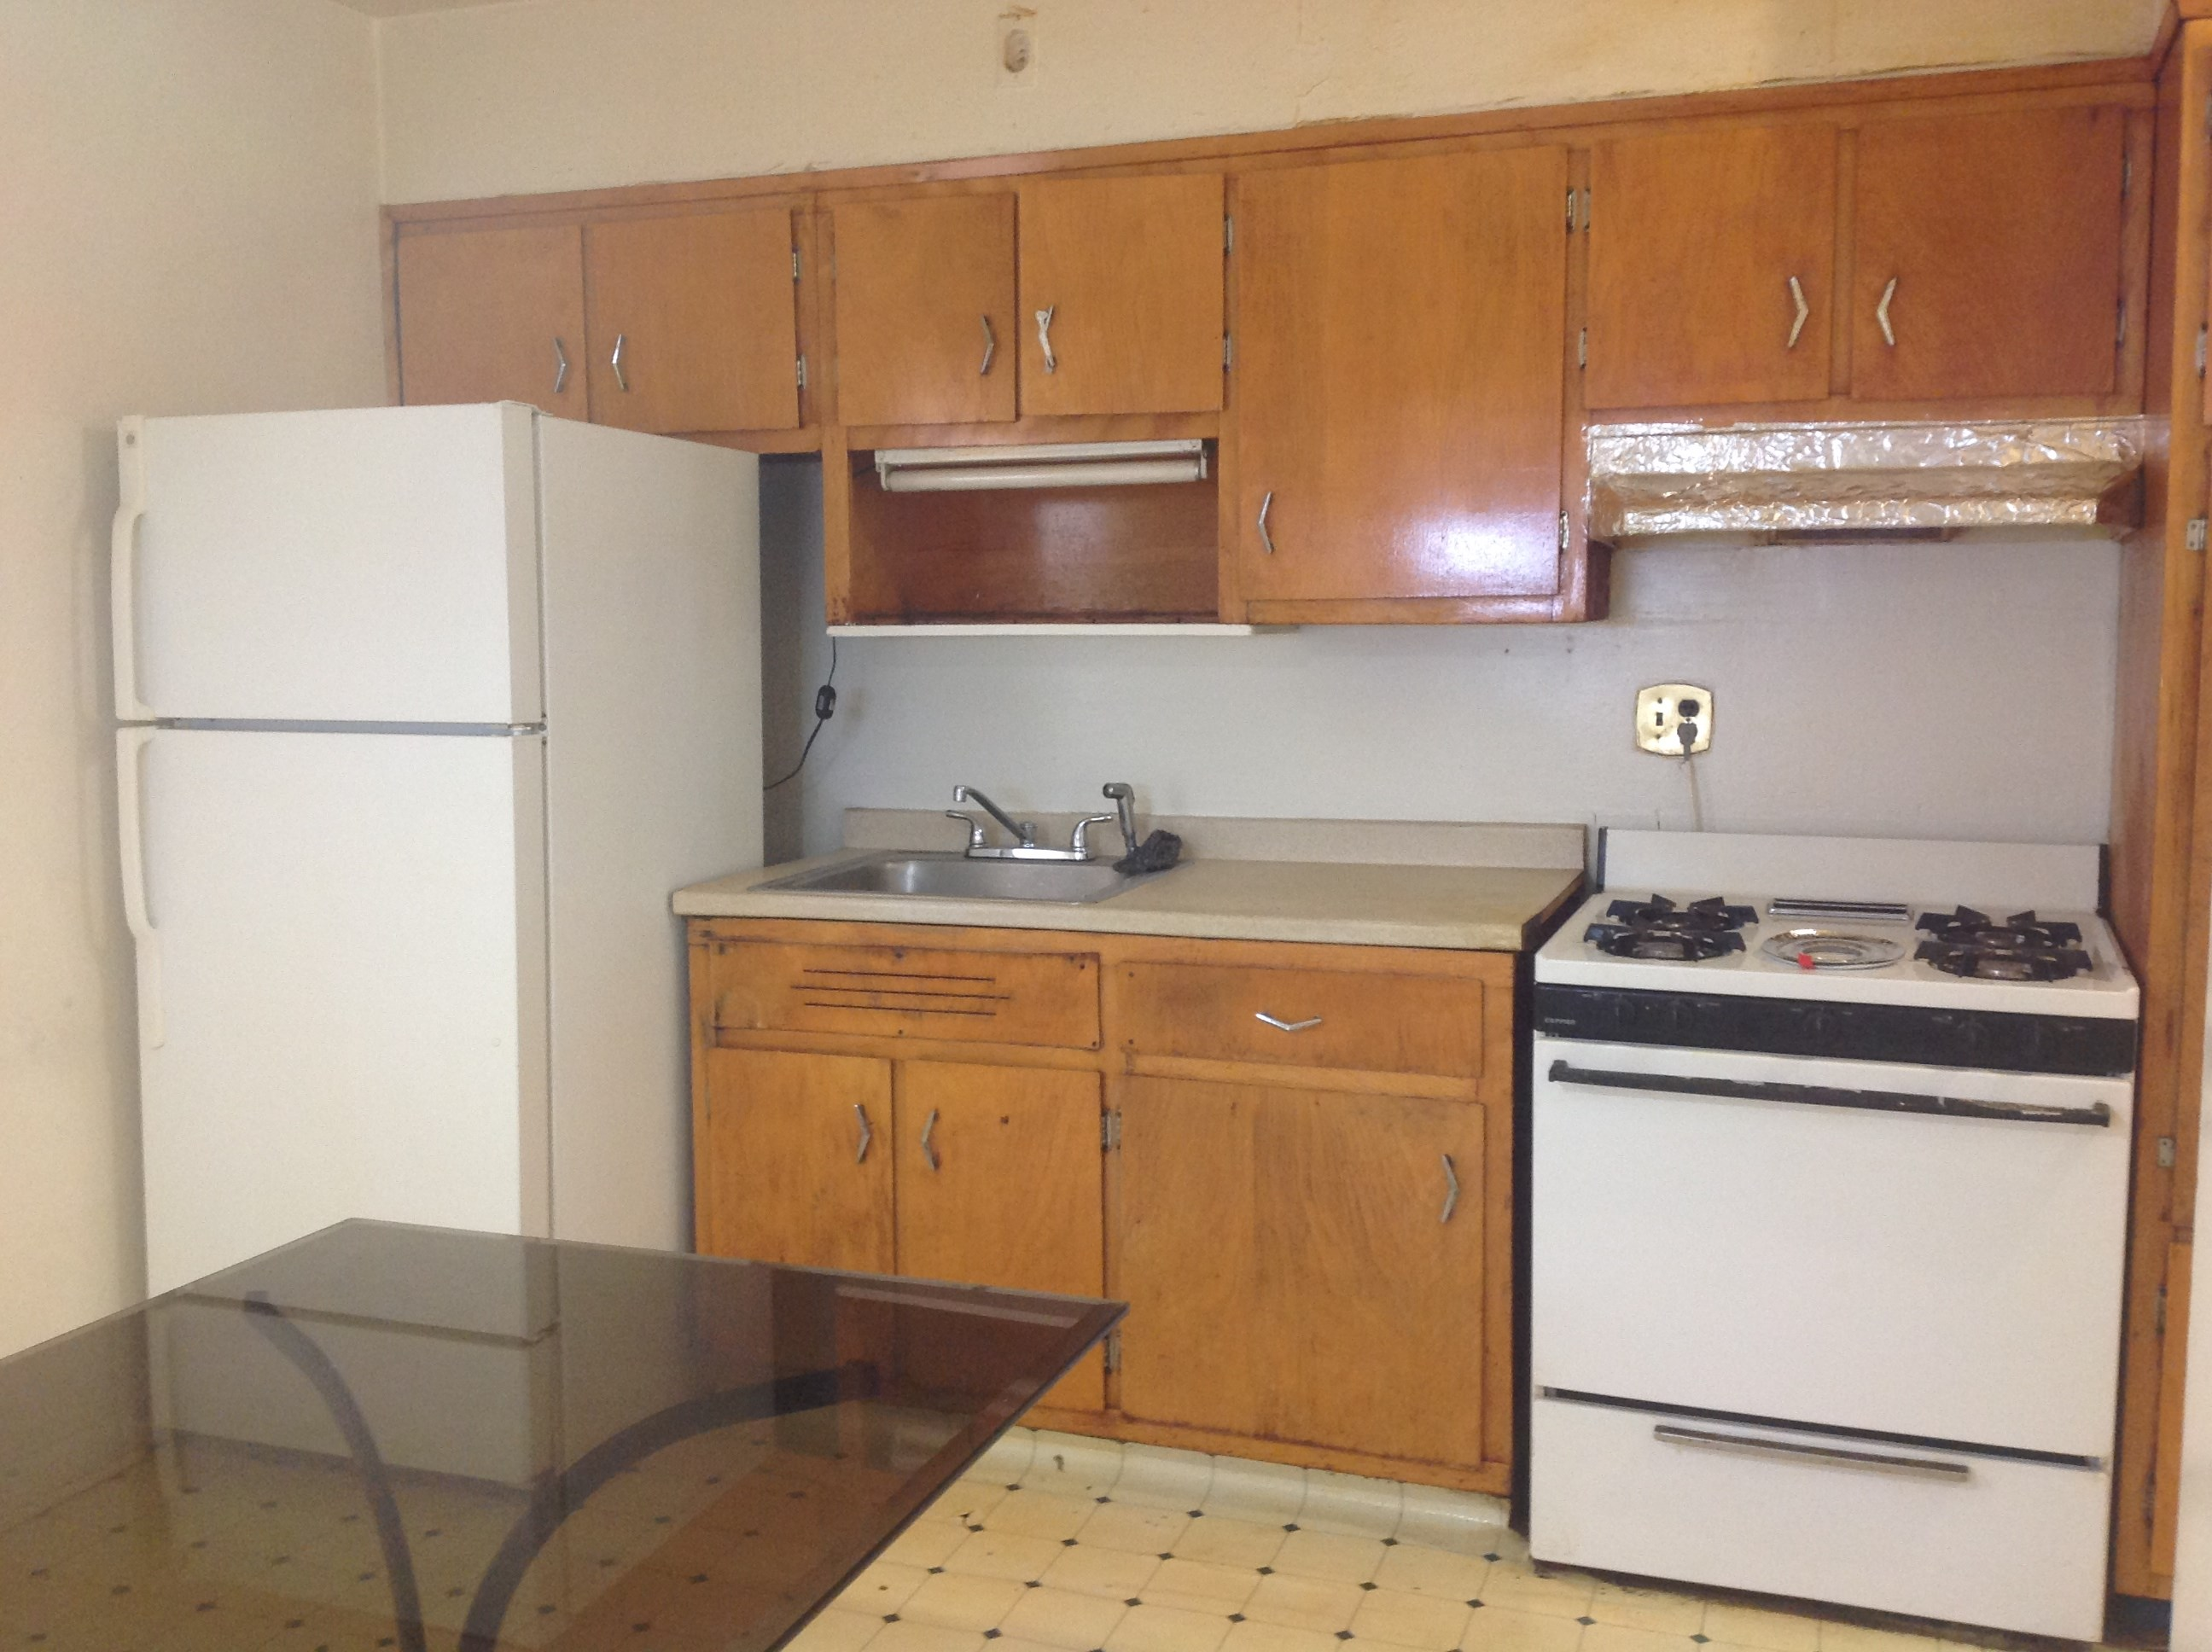 1 bedroom apartments for rent in jersey city nj single bedroom 1 bedroom apartment journal square jersey city 1 min walk path train station and indian market